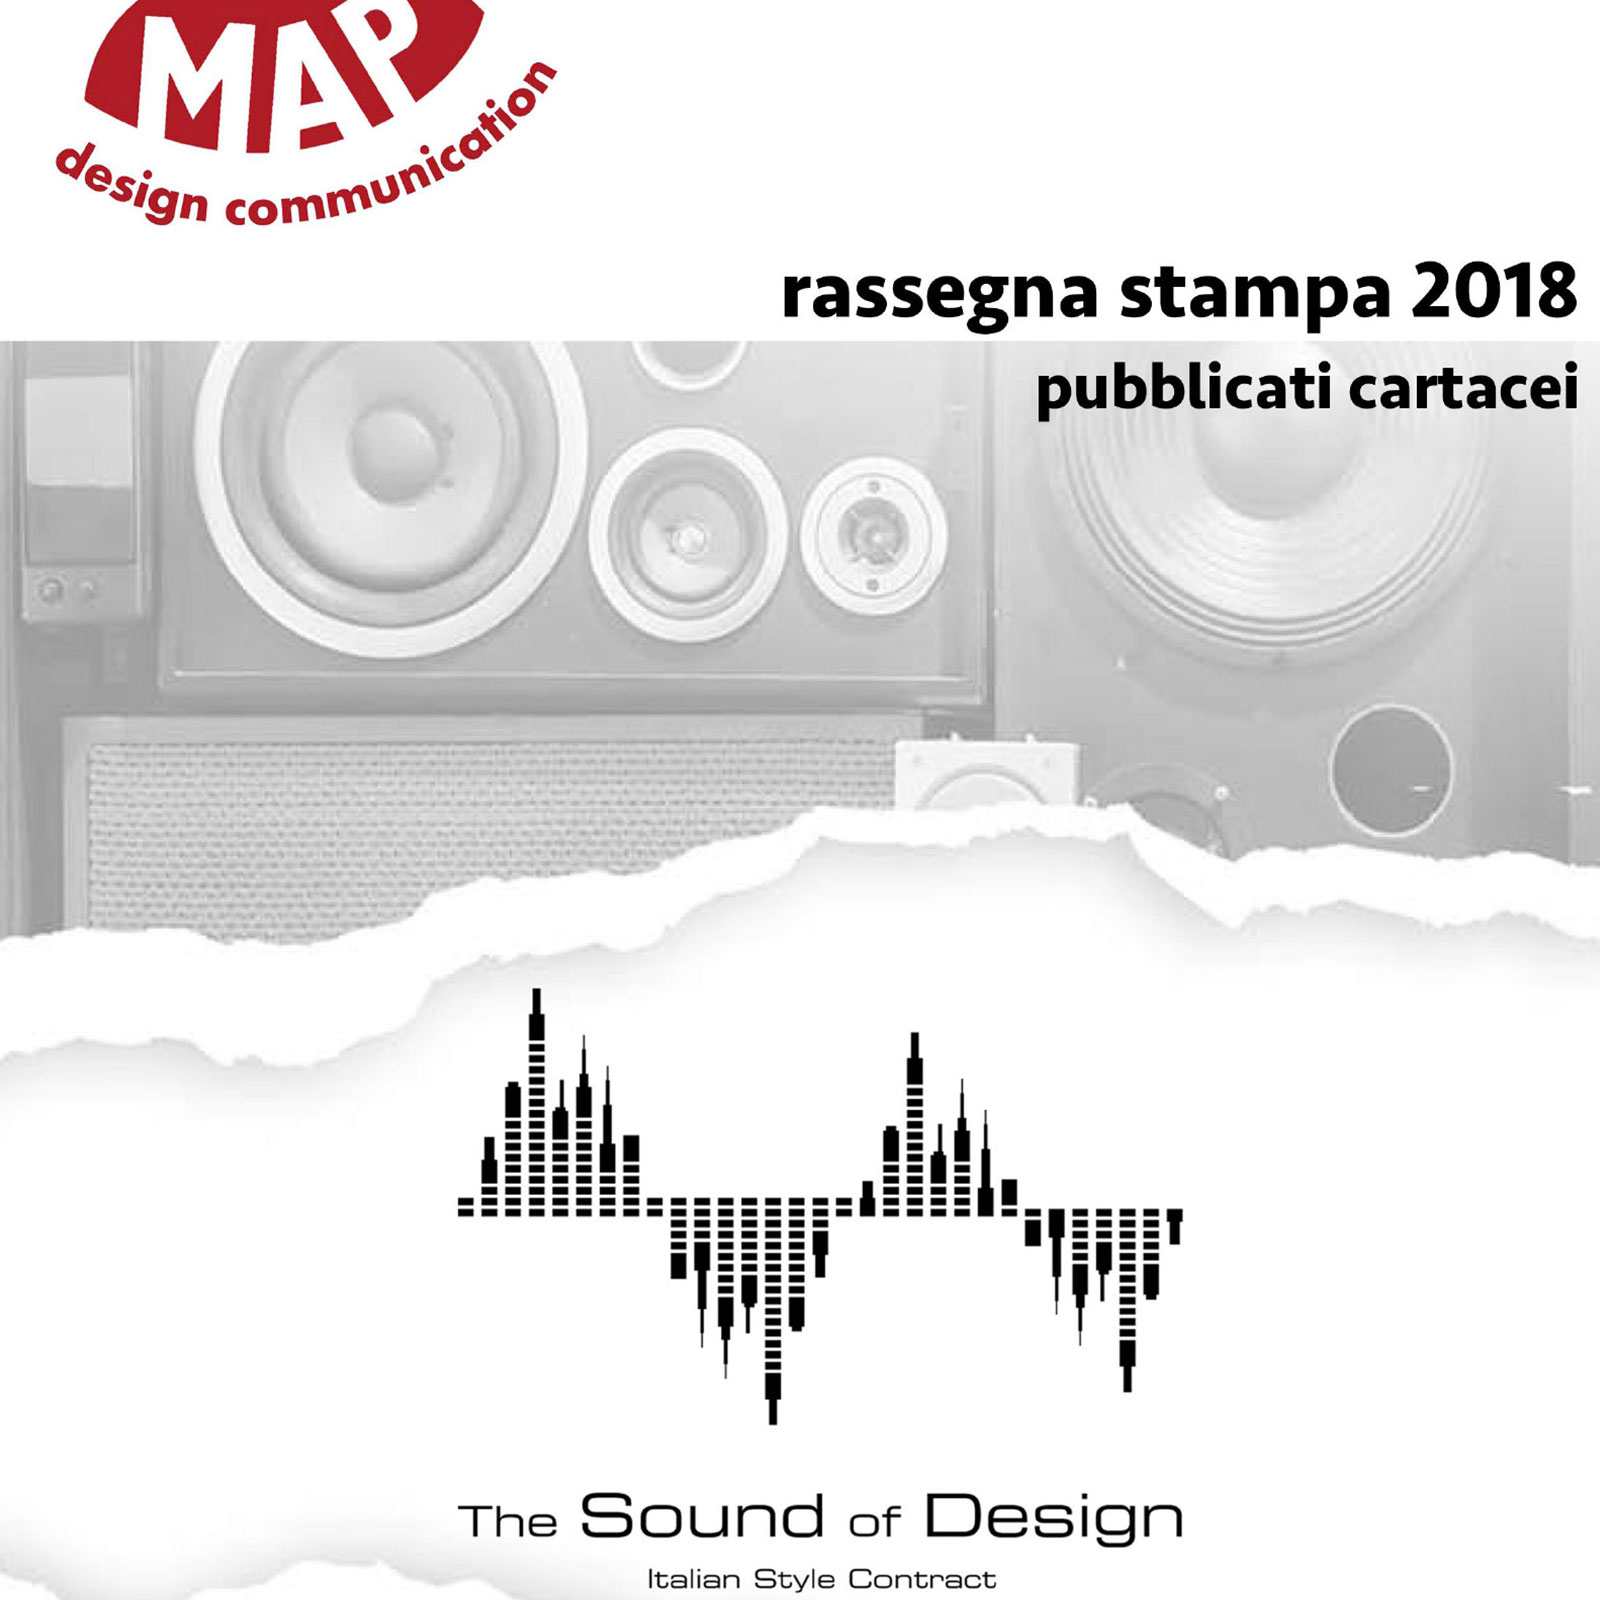 Made a Mano Press 2018 - CER - CERSAIE rassegna stampa